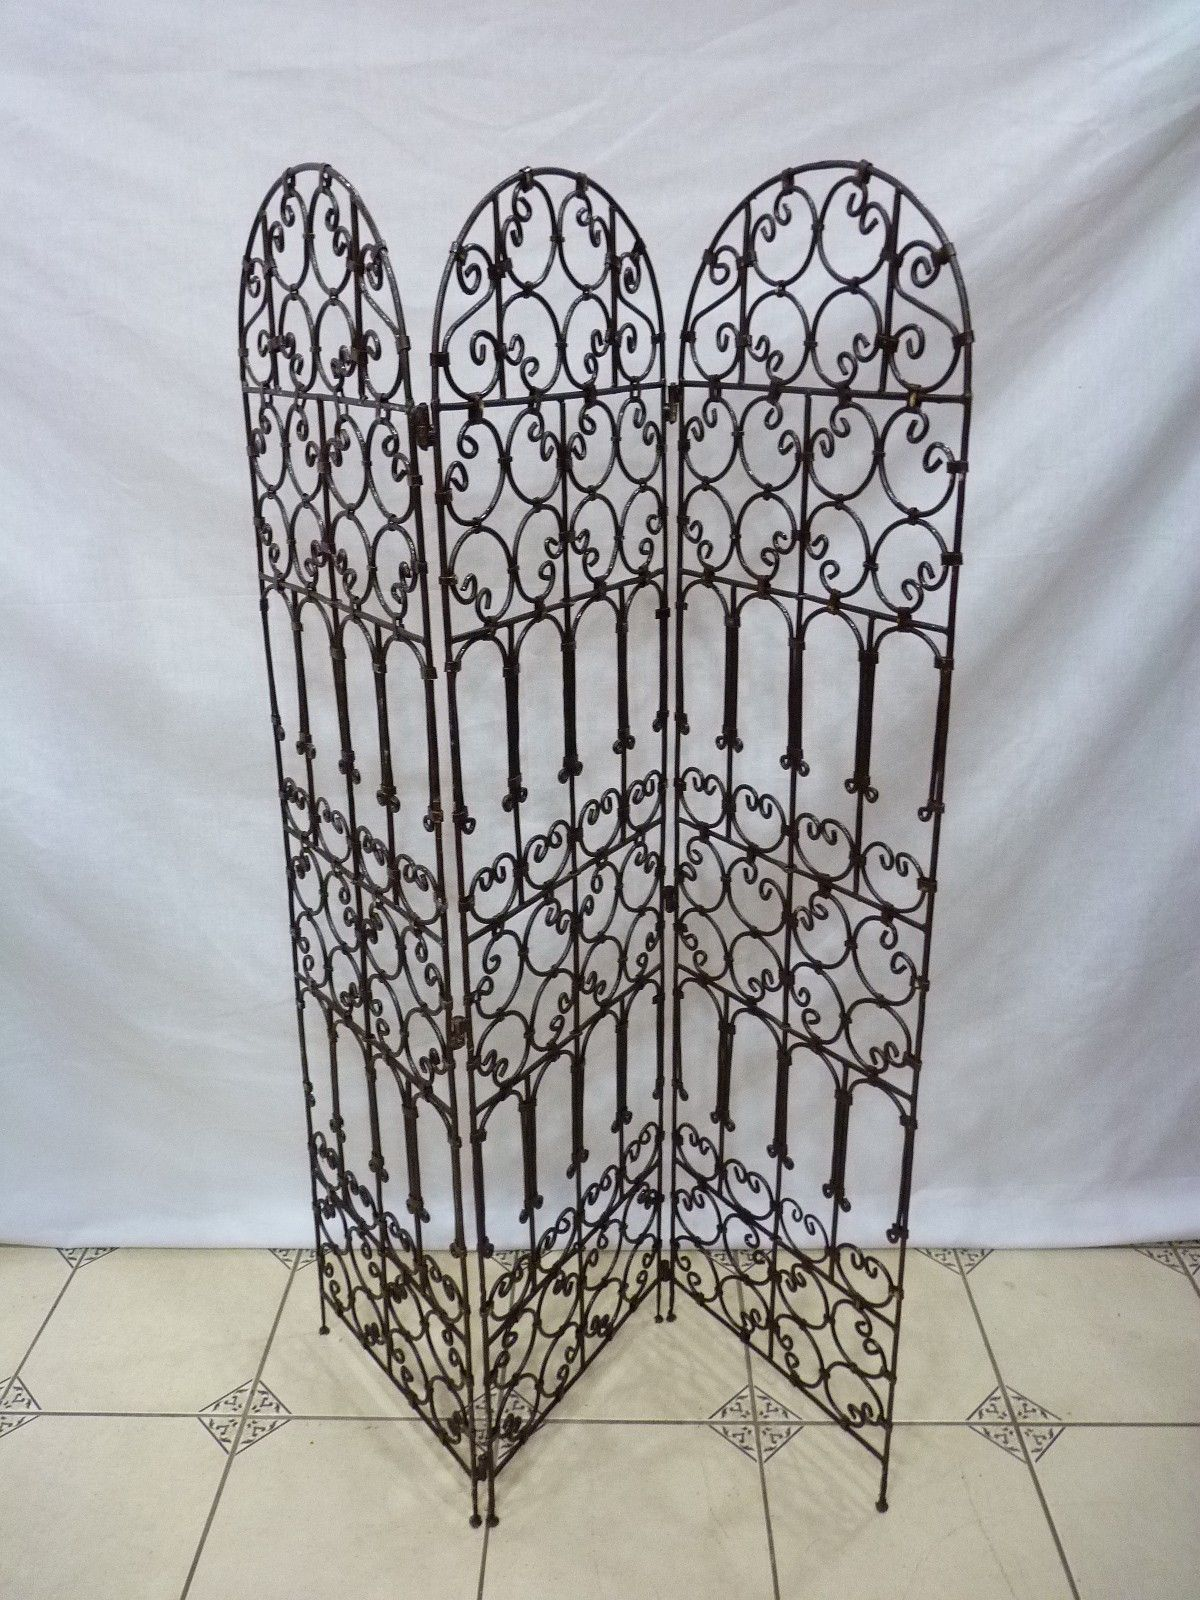 salon marocain hannach paravent fer forger arabesque pinterest screens. Black Bedroom Furniture Sets. Home Design Ideas